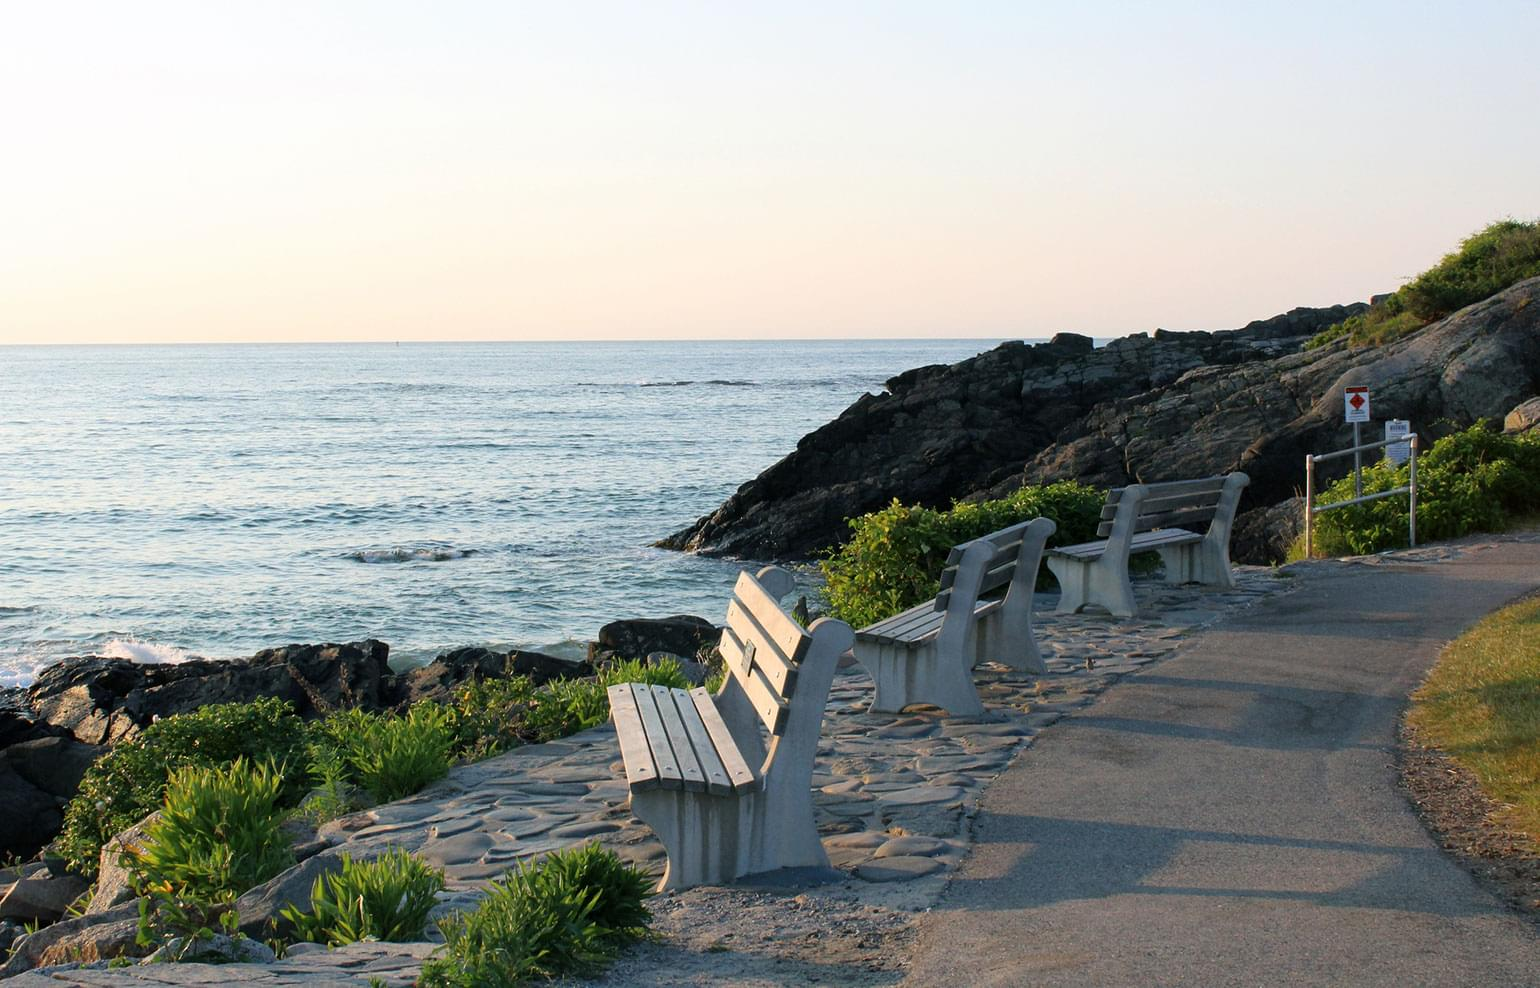 Park benches overlook the shore at sunset in Ogunquit, Maine.